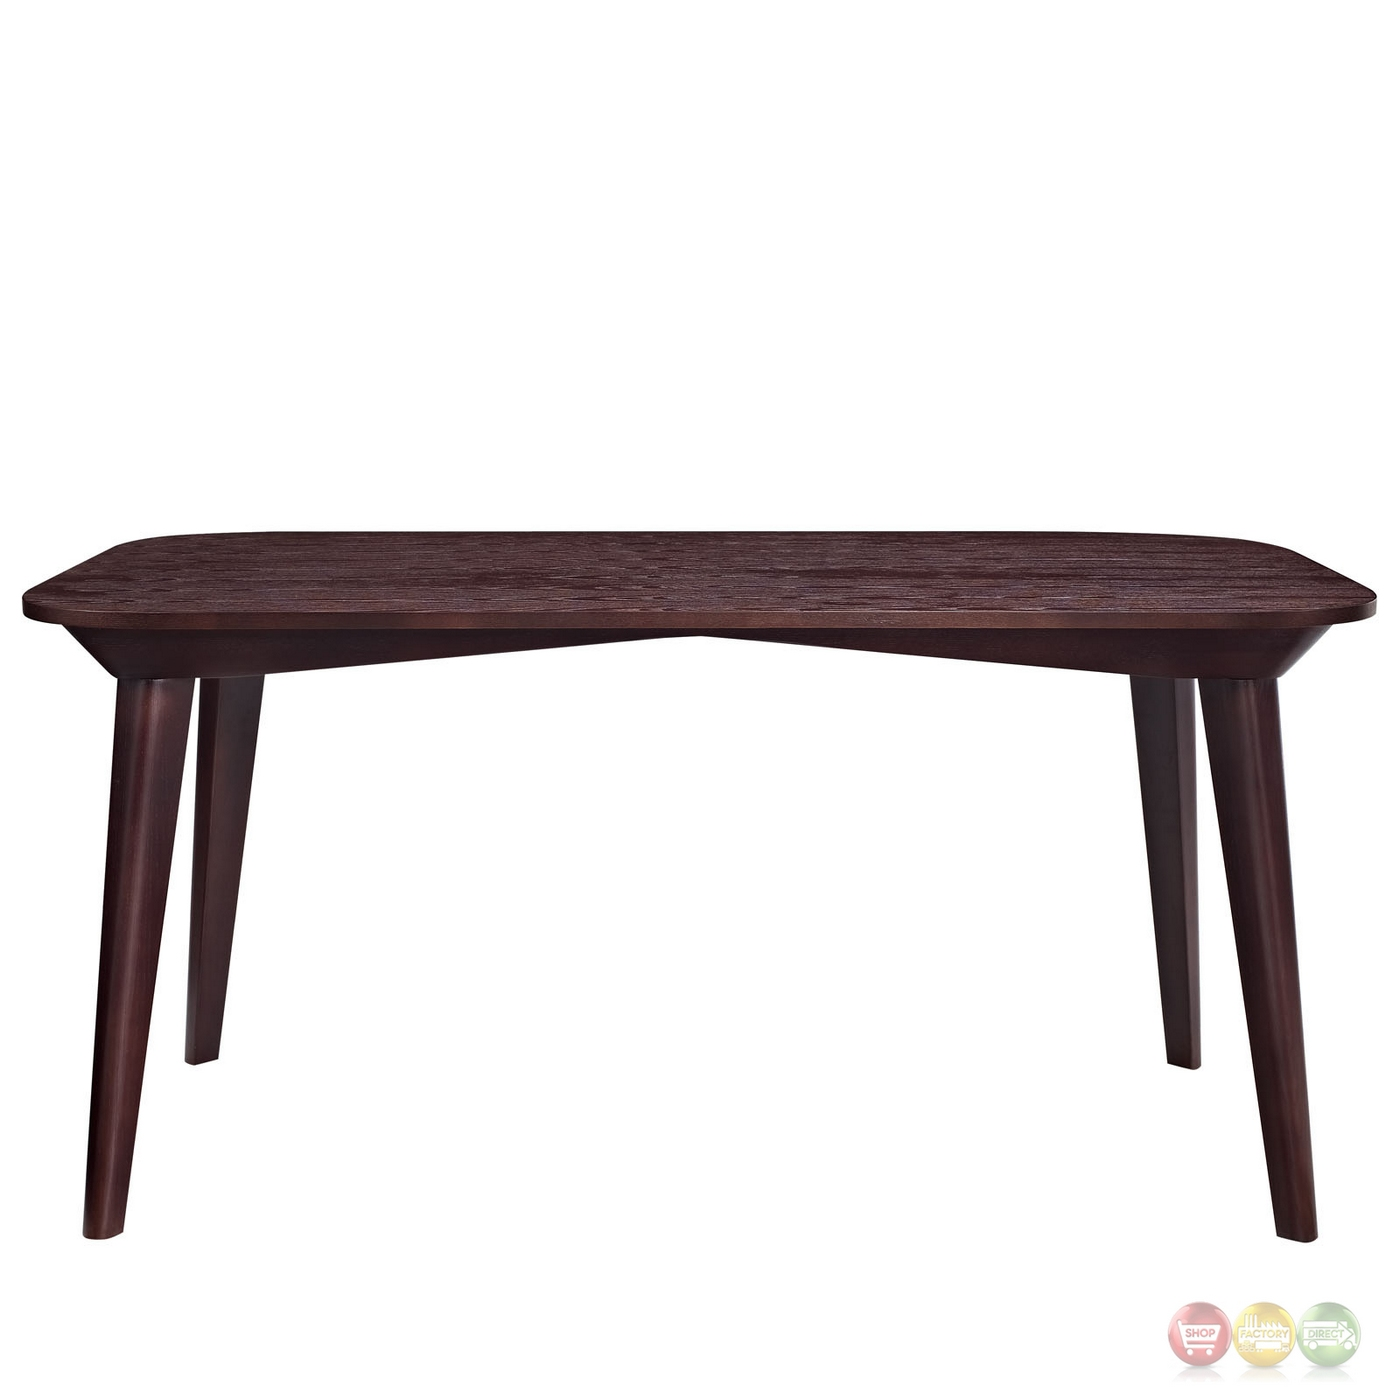 Contemporary Elliptical Shaped 40 Wooden Dining Table Walnut